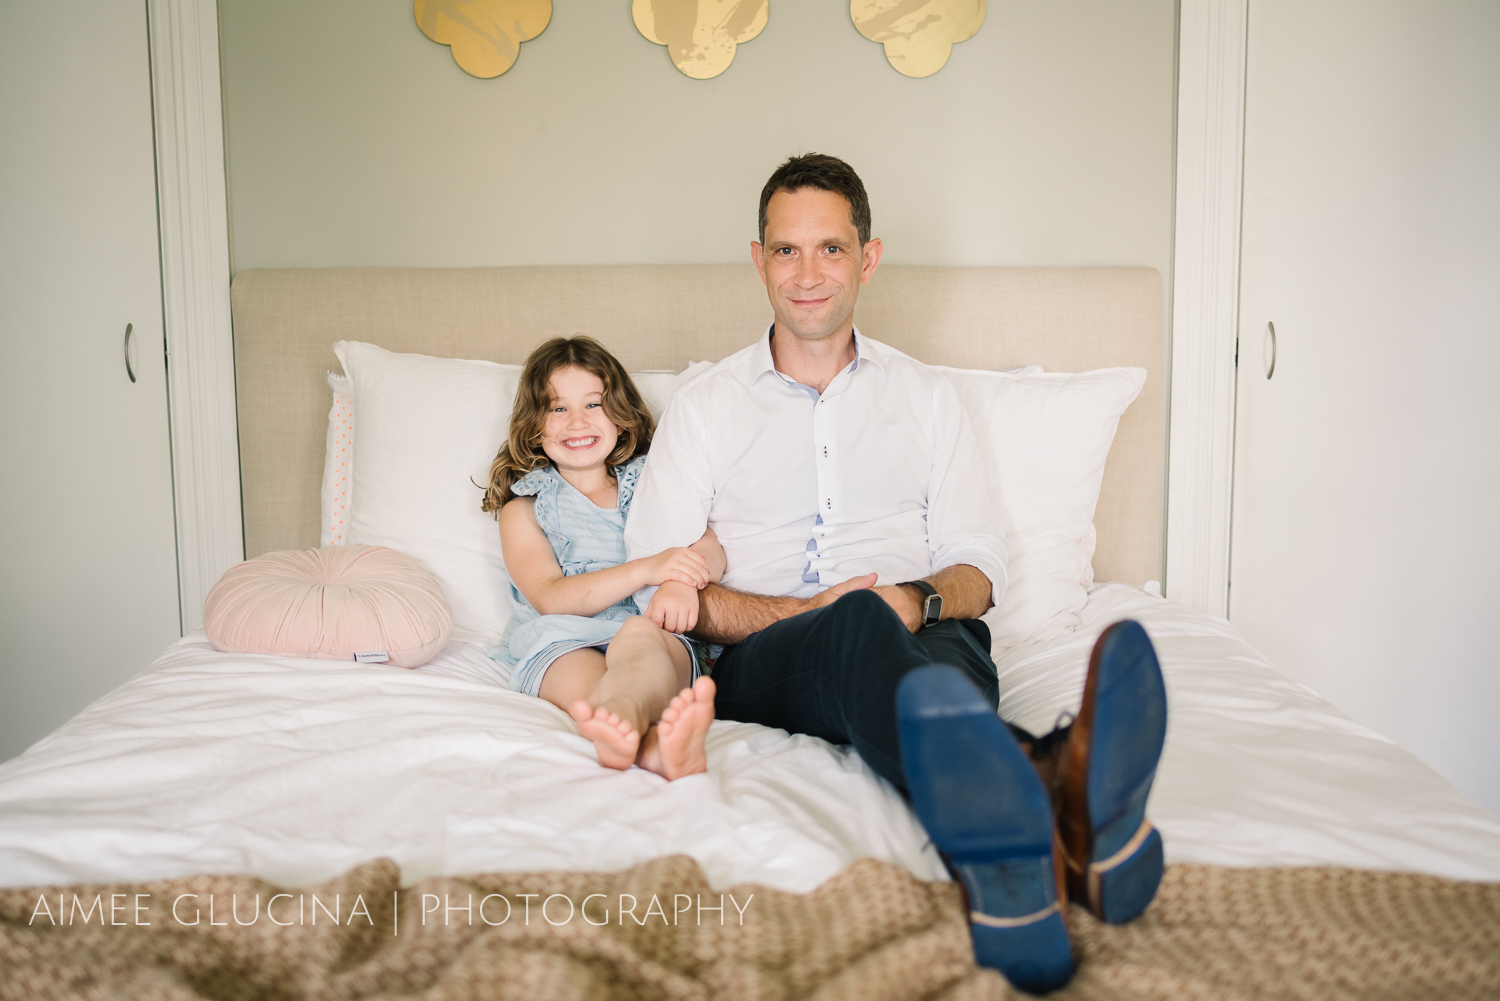 Baudinet Family Session by Aimee Glucina Photography-30.jpg